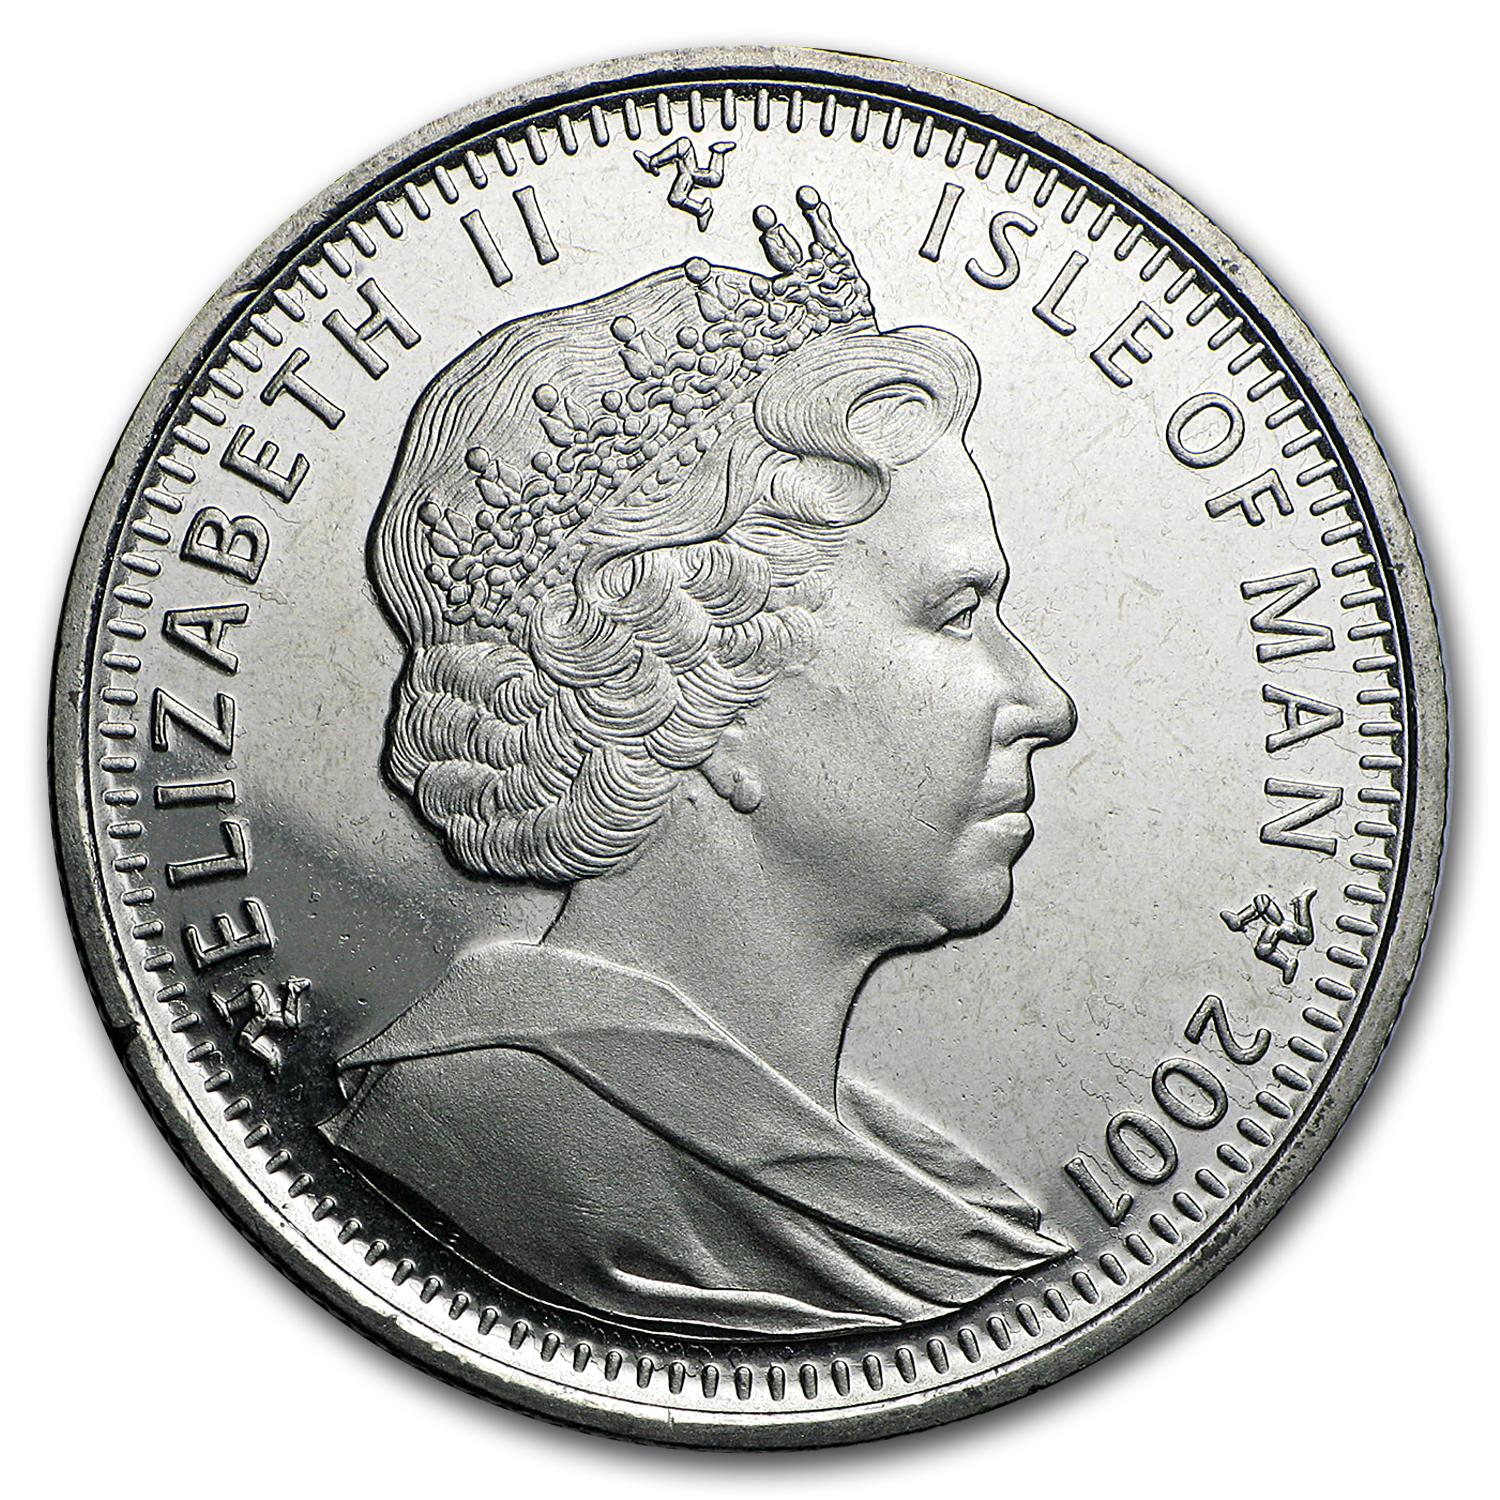 2001 Isle of Man Cupro-Nickel 1 Crown Harry Casting a Spell